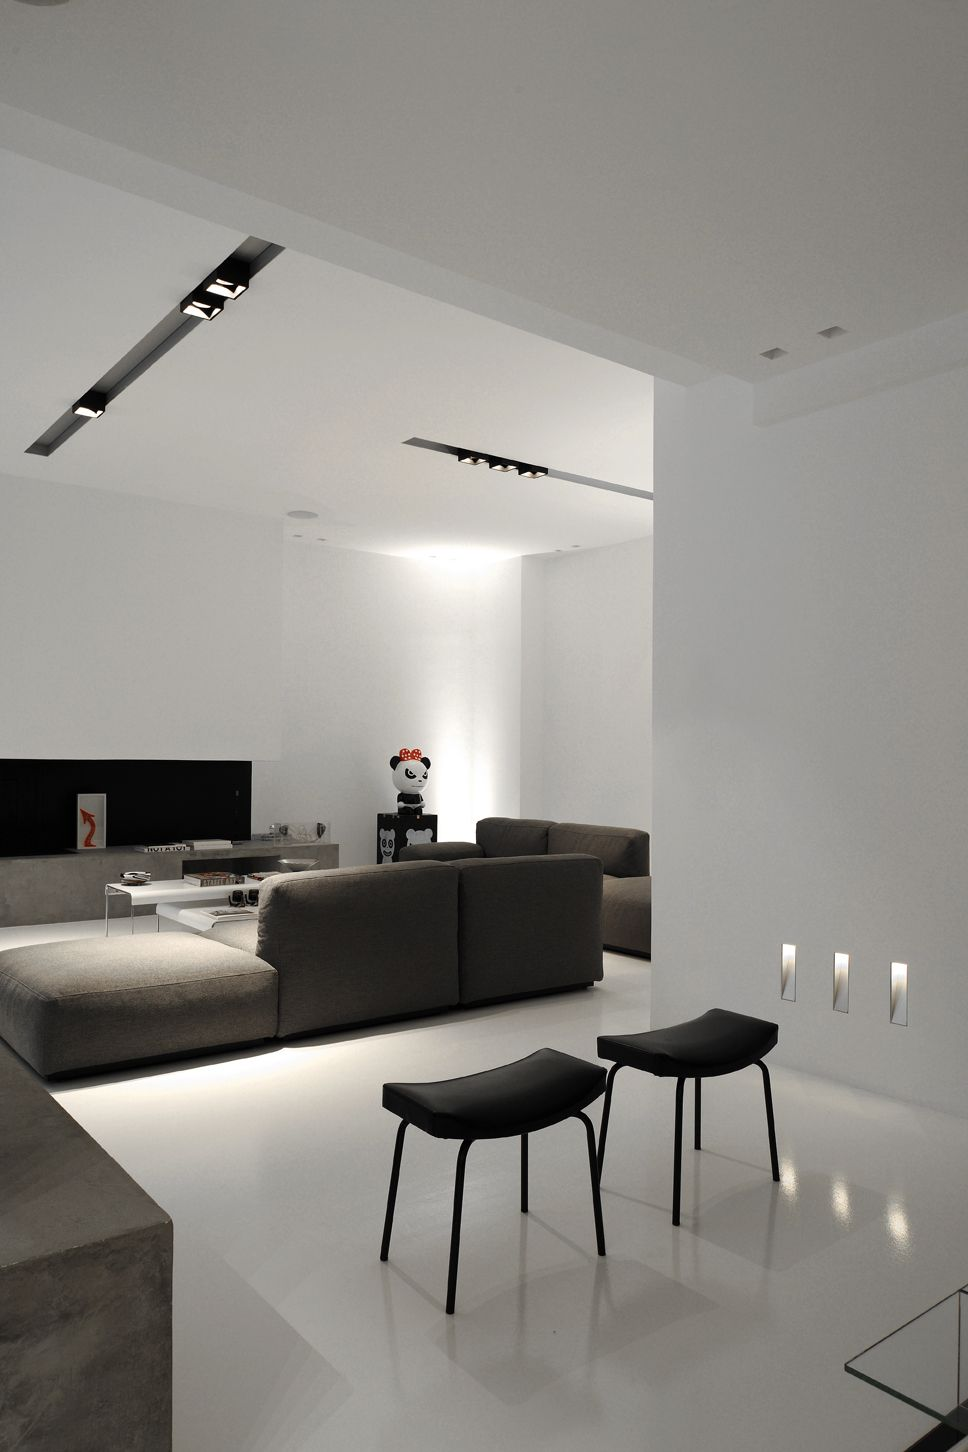 Eclairage Spot Salon All White Interior With Dark Furniture And Kreon Lighting